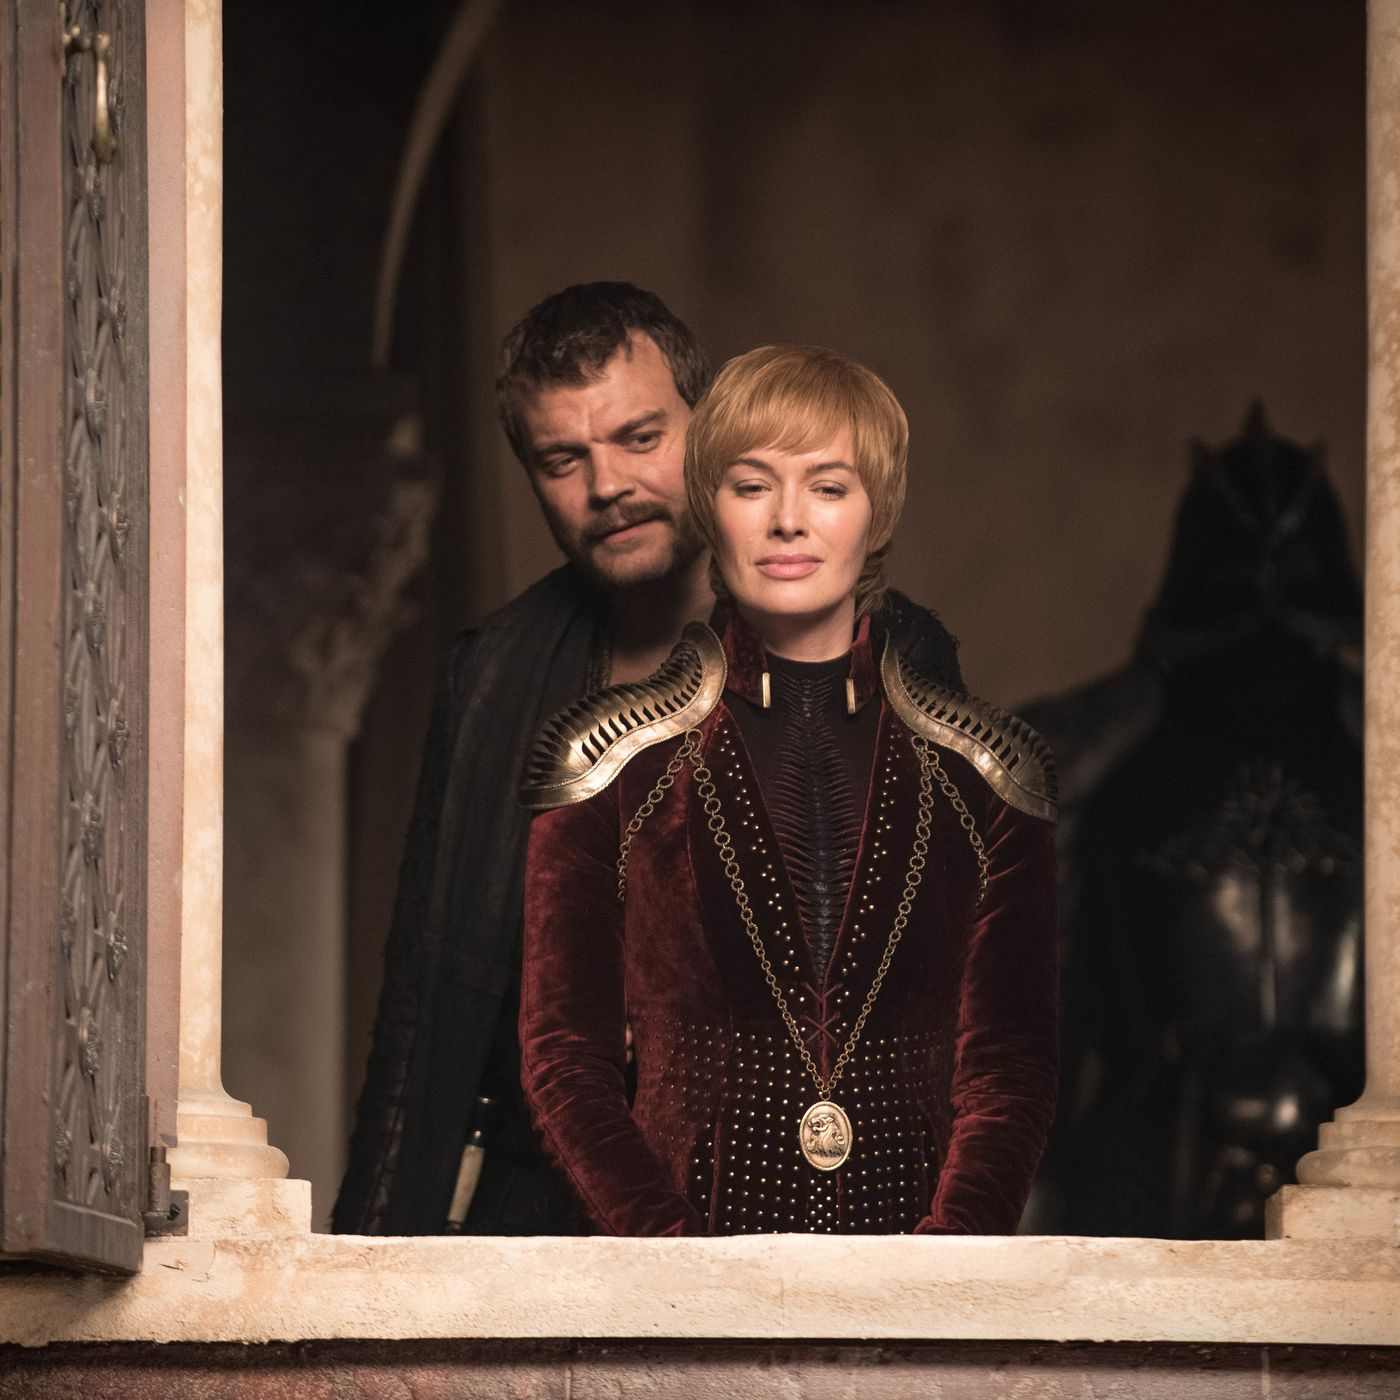 Game of Thrones episode 4: Cersei's pregnancy and prophecy